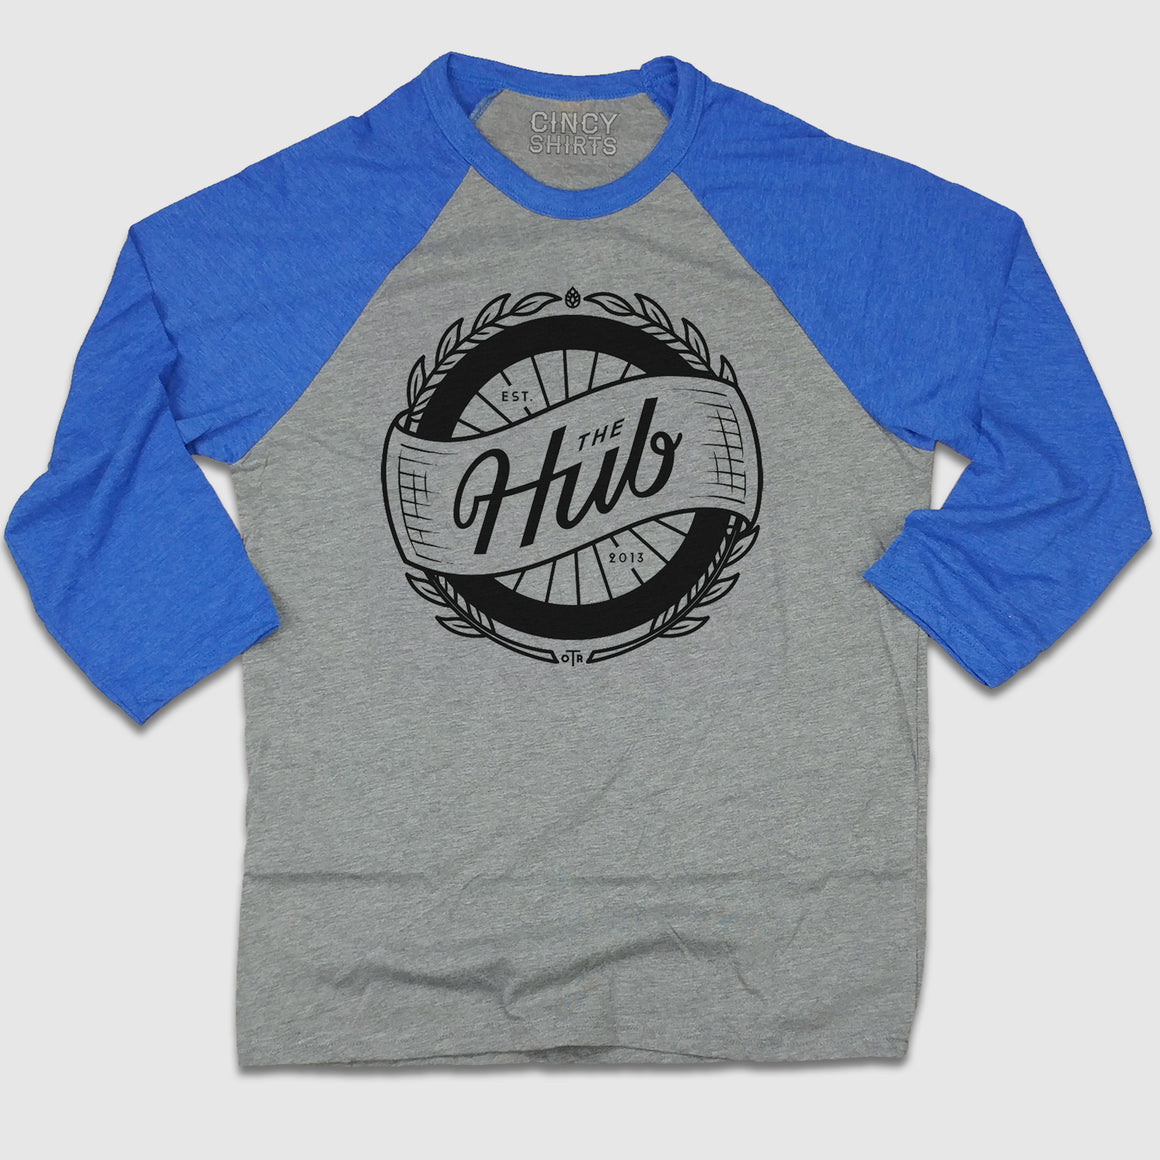 The Hub - Full Chest Logo Tee - Cincy Shirts